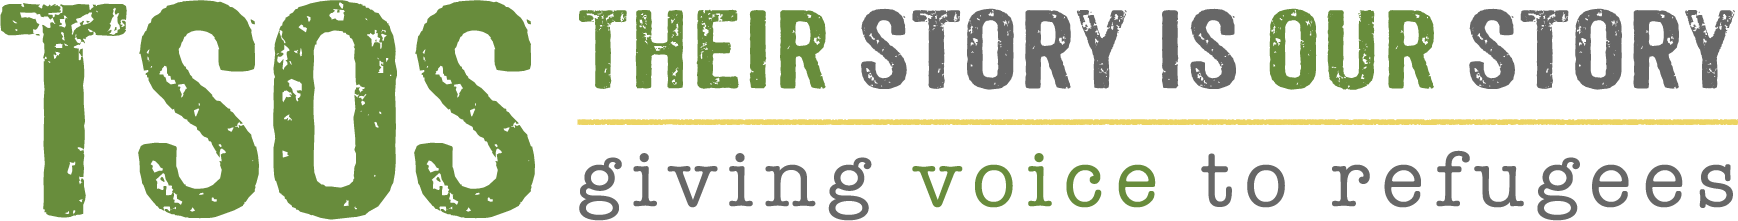 Their Story is Our Story Logo